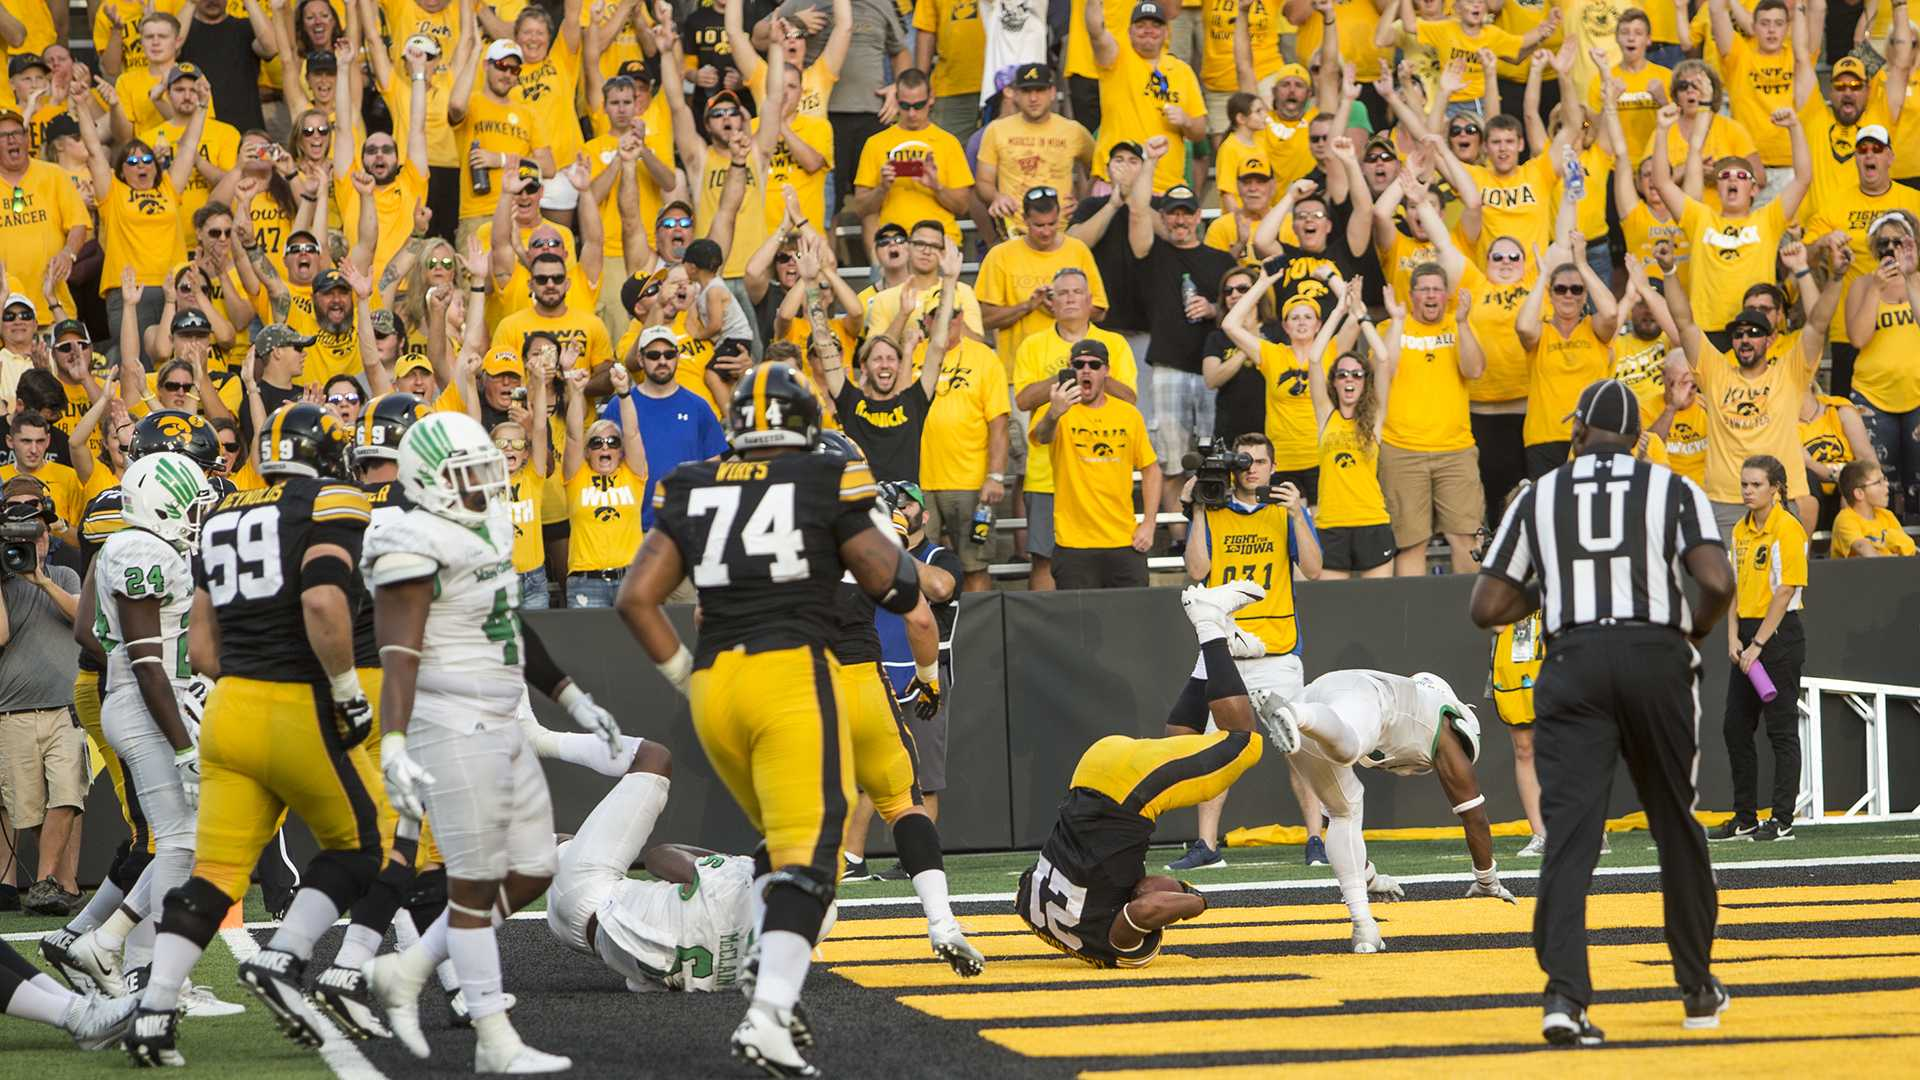 Iowa fan's celebrate after Ivory Kelly-Martin scores a touchdown during the game between Iowa and North Texas at Kinnick Stadium on Saturday Sept. 16, 2017. Iowa won 31-14. (Nick Rohlman/The Daily Iowan)